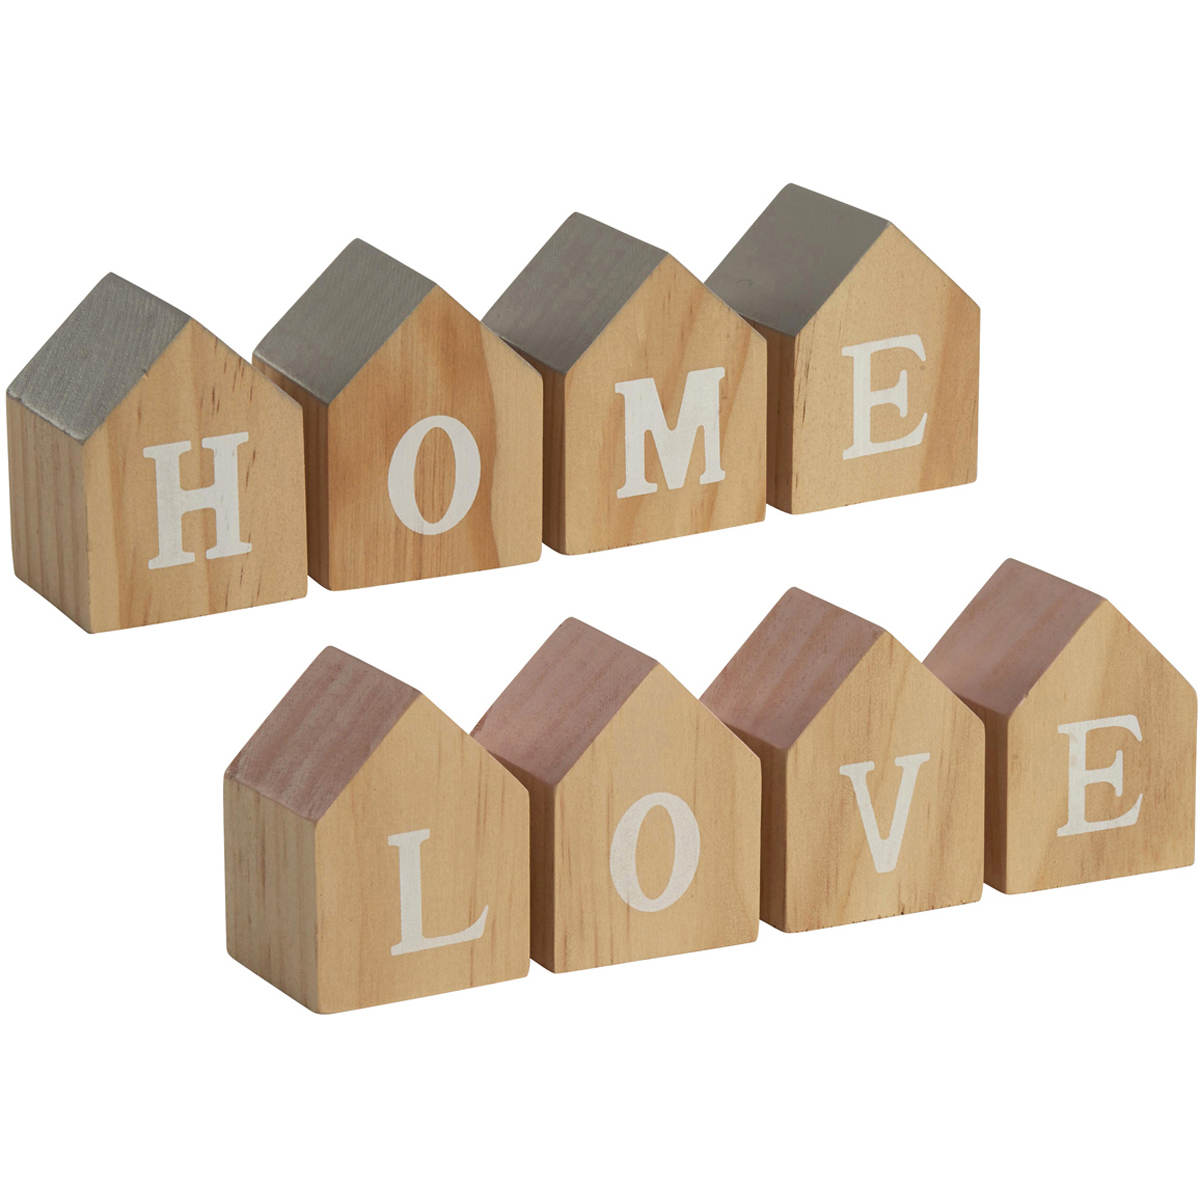 house shape home love letter blocks mint and molly With home letter blocks